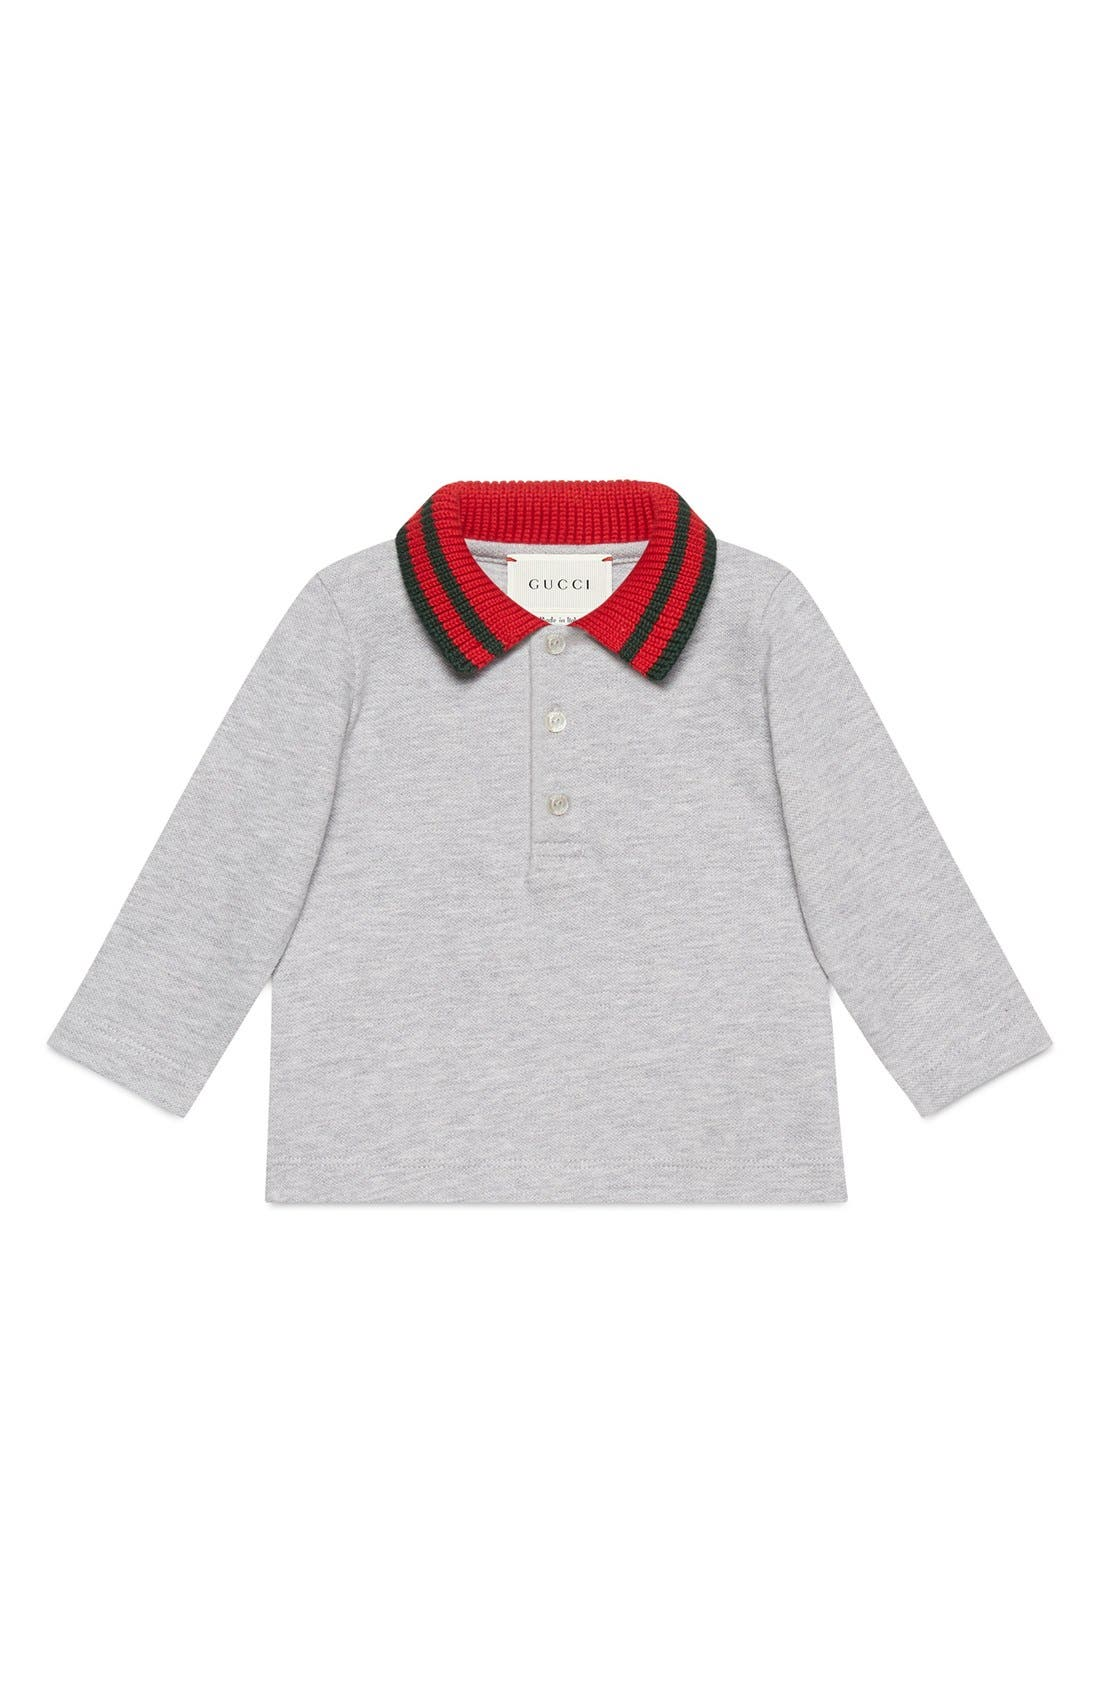 GUCCI Stripe Collar Long Sleeve Polo